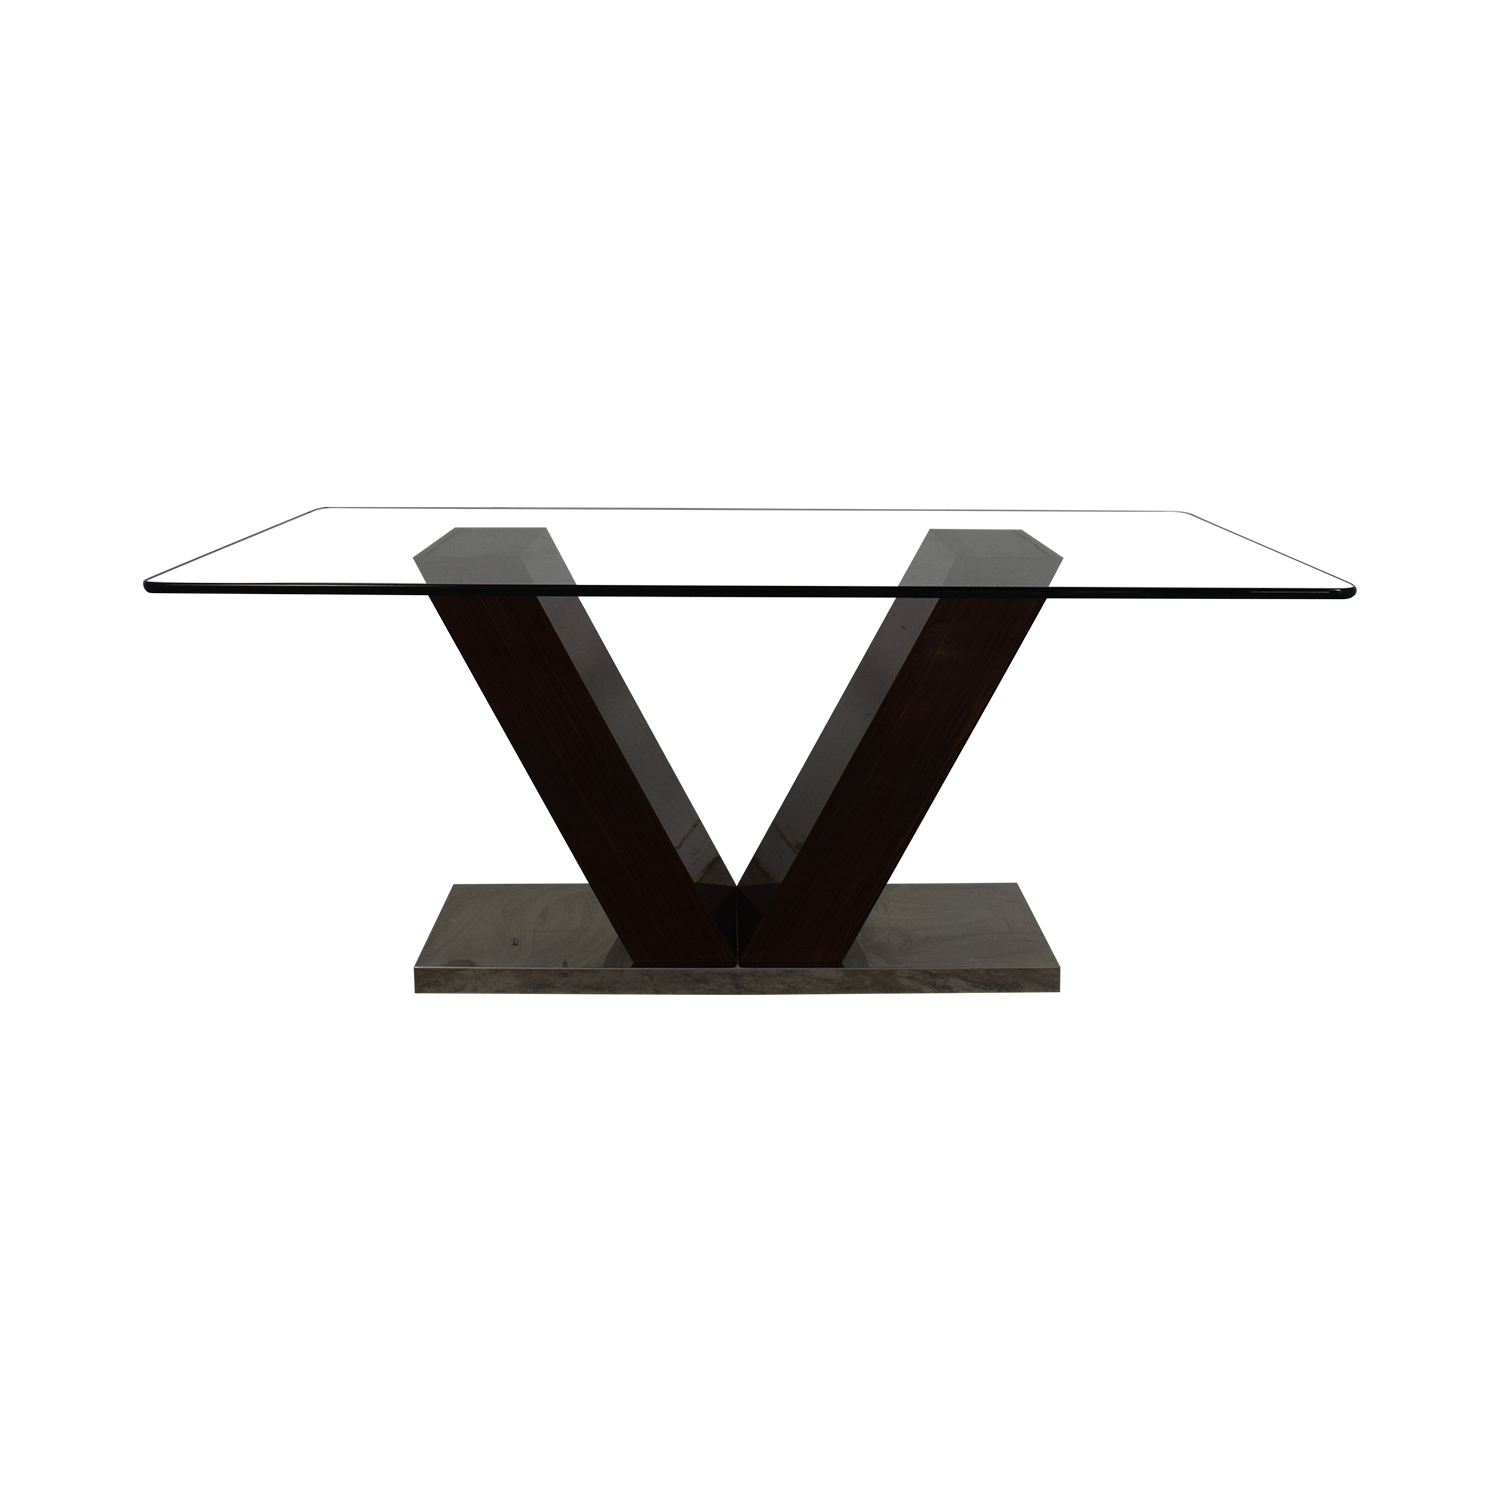 [%88% Off – V Shaped Base Glass Dining Table / Tables Regarding Well Liked Salvaged Black Shayne Drop Leaf Kitchen Tables|Salvaged Black Shayne Drop Leaf Kitchen Tables For Trendy 88% Off – V Shaped Base Glass Dining Table / Tables|Current Salvaged Black Shayne Drop Leaf Kitchen Tables Inside 88% Off – V Shaped Base Glass Dining Table / Tables|2019 88% Off – V Shaped Base Glass Dining Table / Tables With Regard To Salvaged Black Shayne Drop Leaf Kitchen Tables%] (View 17 of 25)